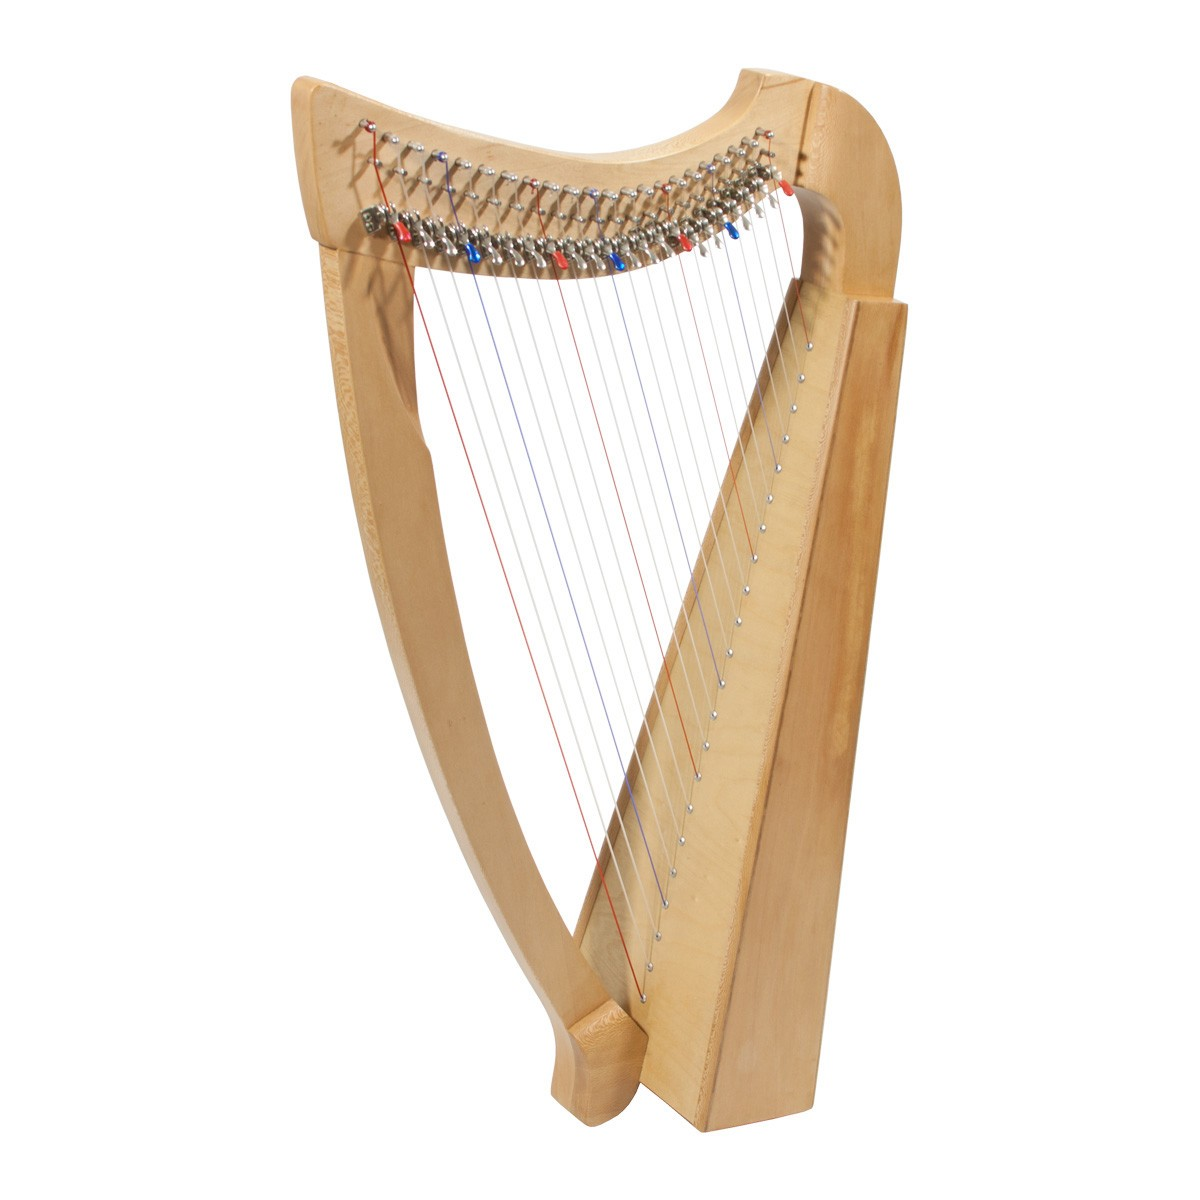 Roosebeck 22-String Lacewood Harp Chelby Levers Natural *Blemished -2